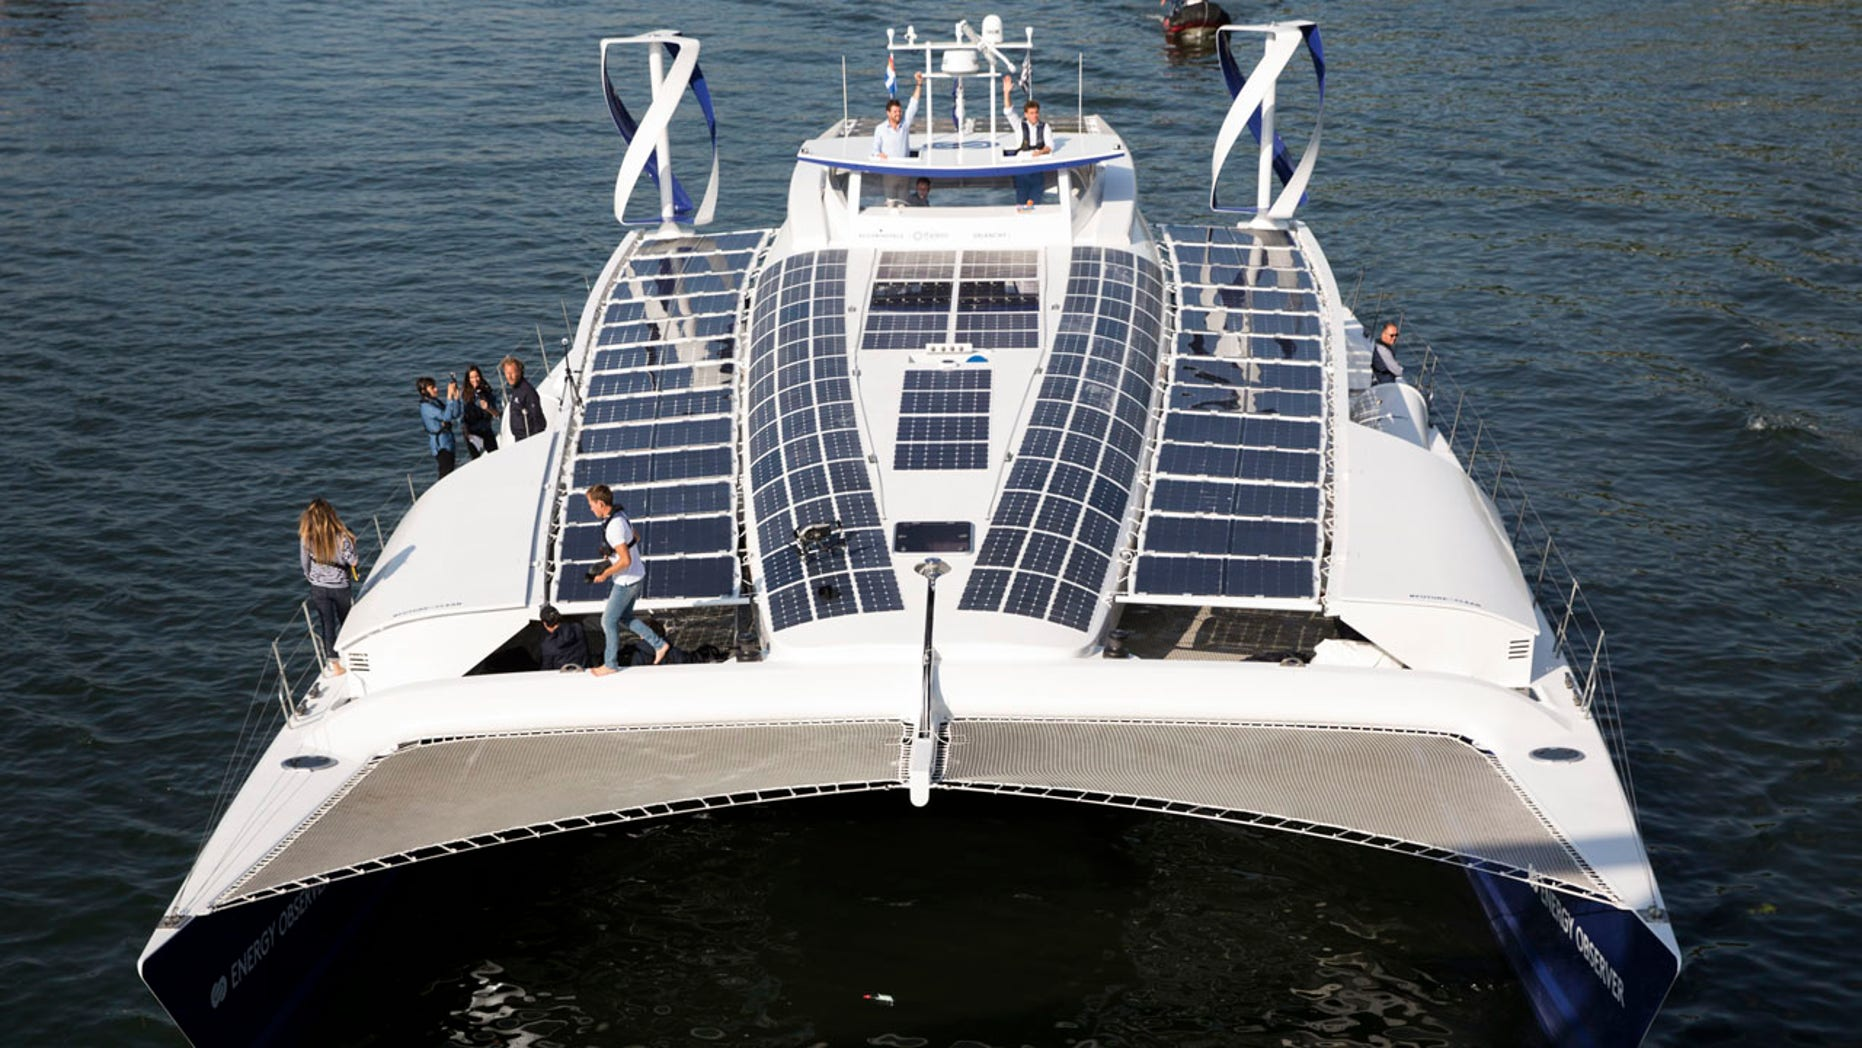 In this Tuesday, July 4, 2017 file photo, the Energy Observer, a former race boat turned into a autonomous navigation with hydrogen, sails on the Seine river in Paris.